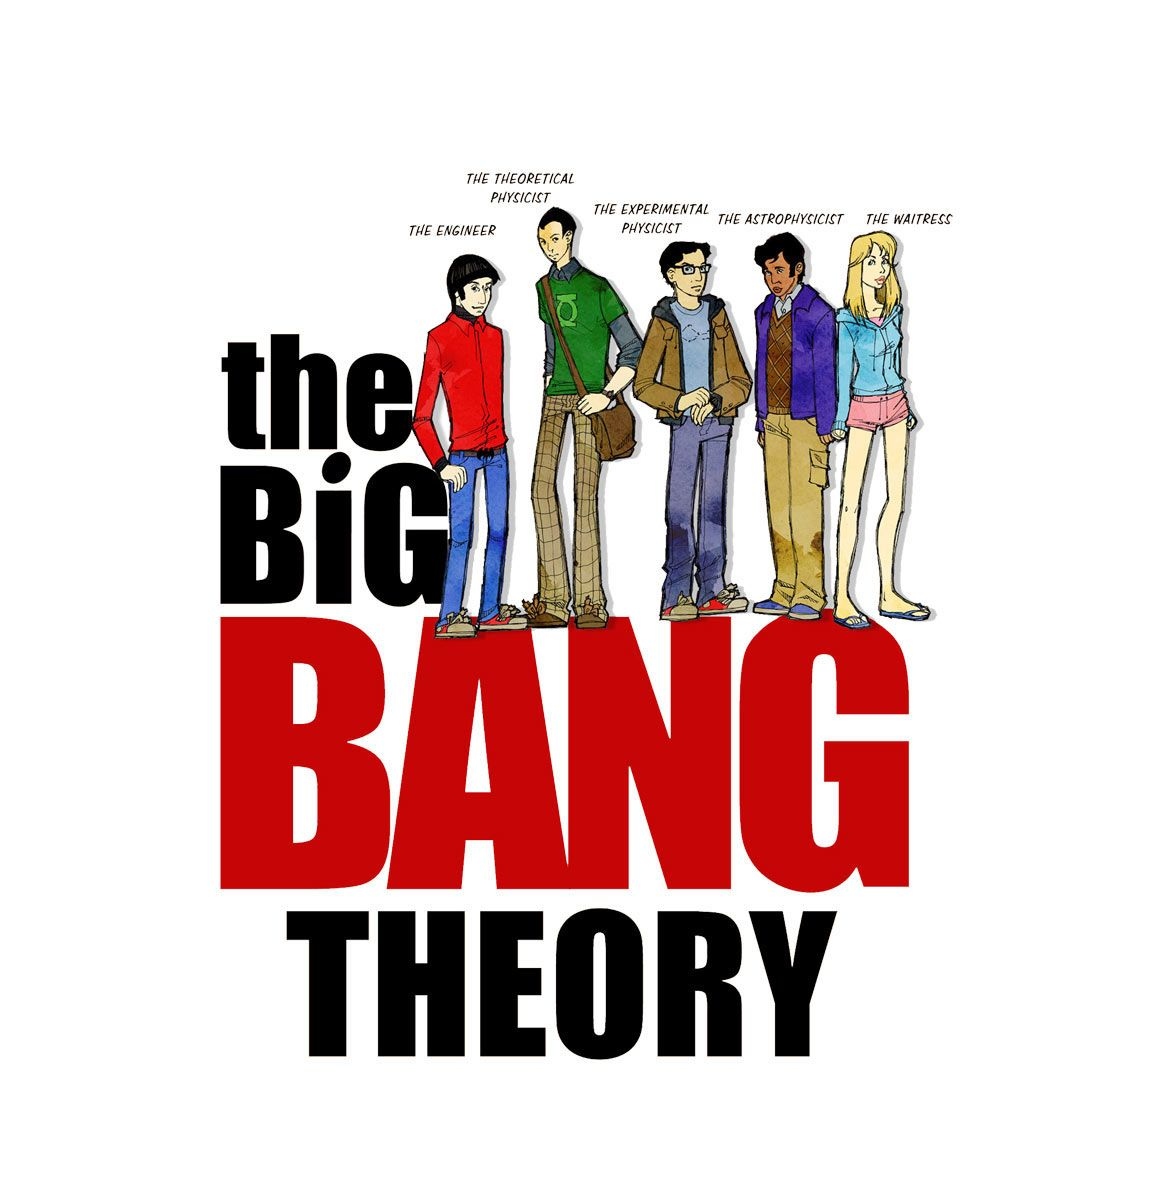 Camiseta chica The Big Bang Theory. Personajes 290a4850f54ba